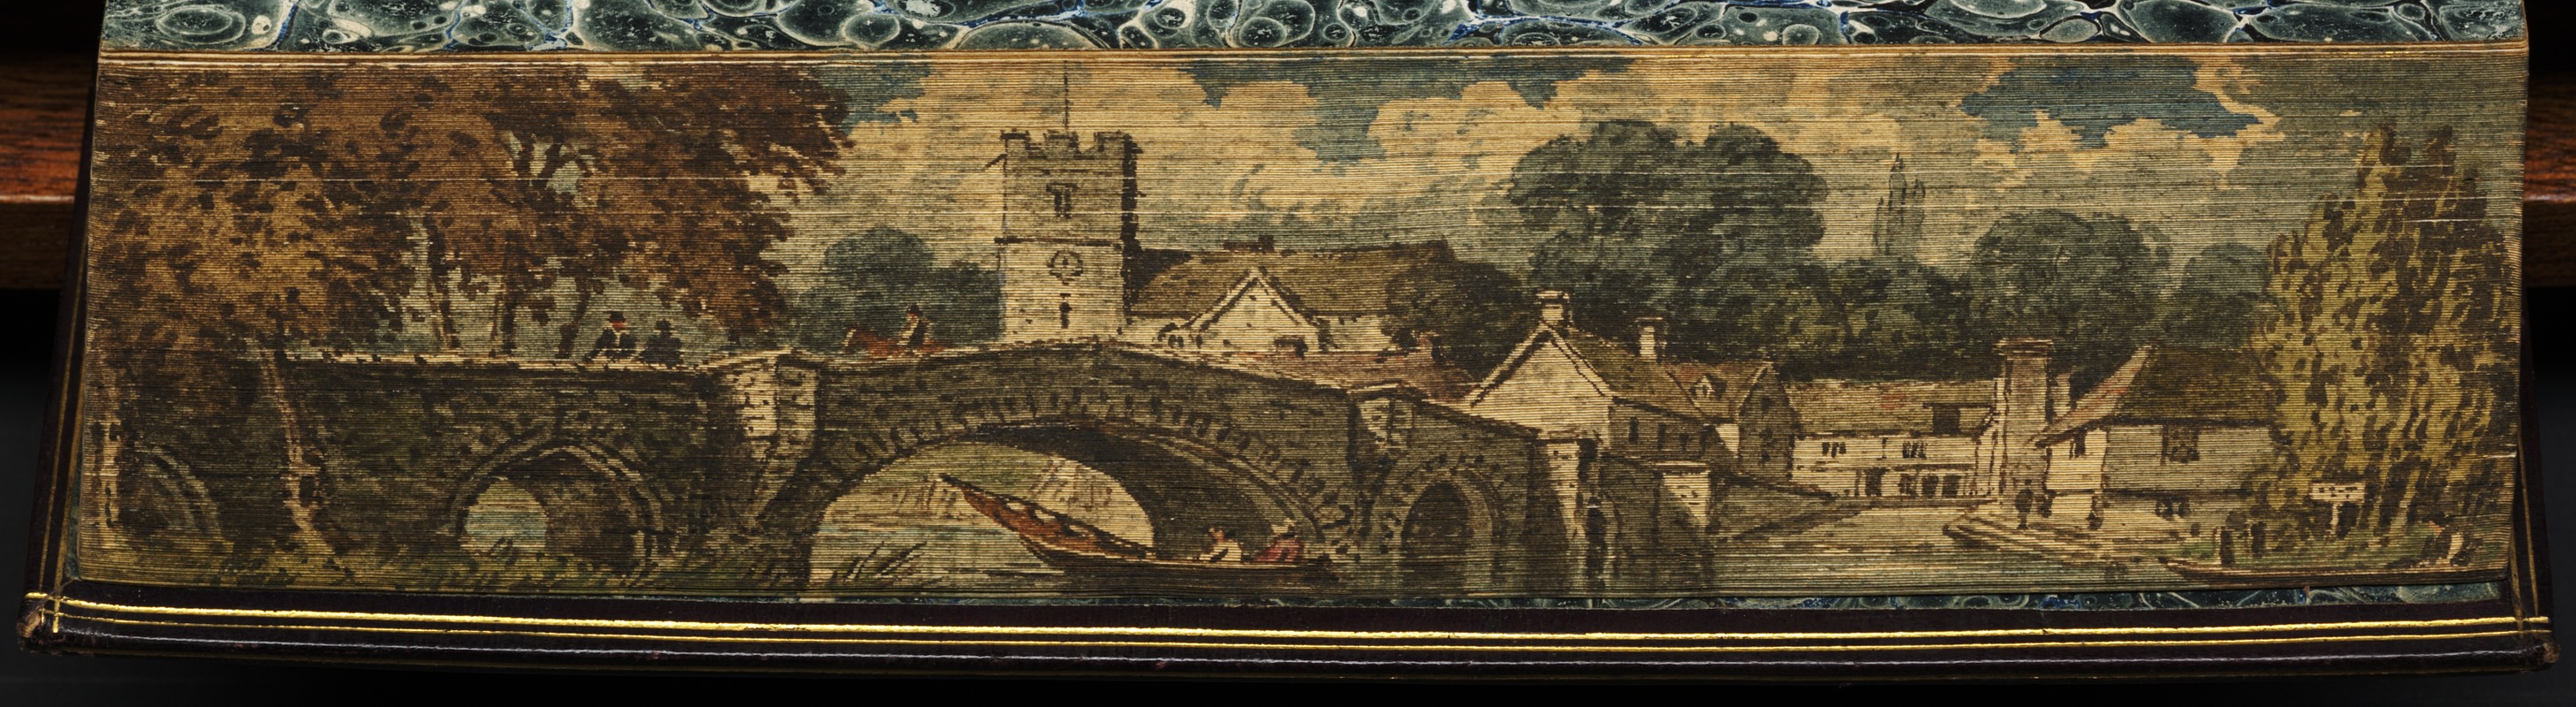 Aylesford Church and bridge in the beautiful county of Kent